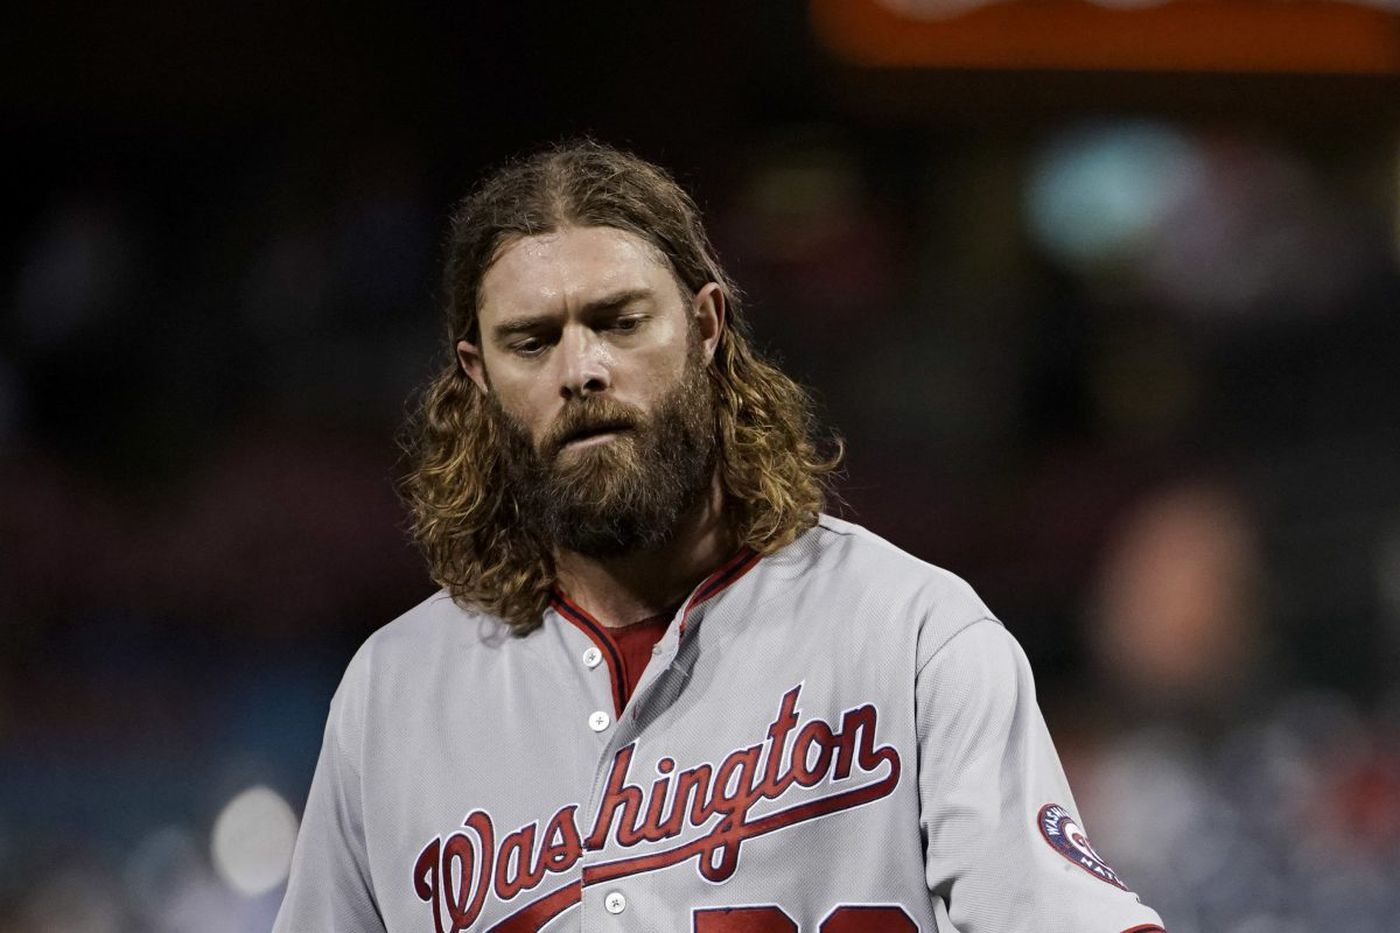 Jayson Werth pays tribute to Philadelphia, fans boo